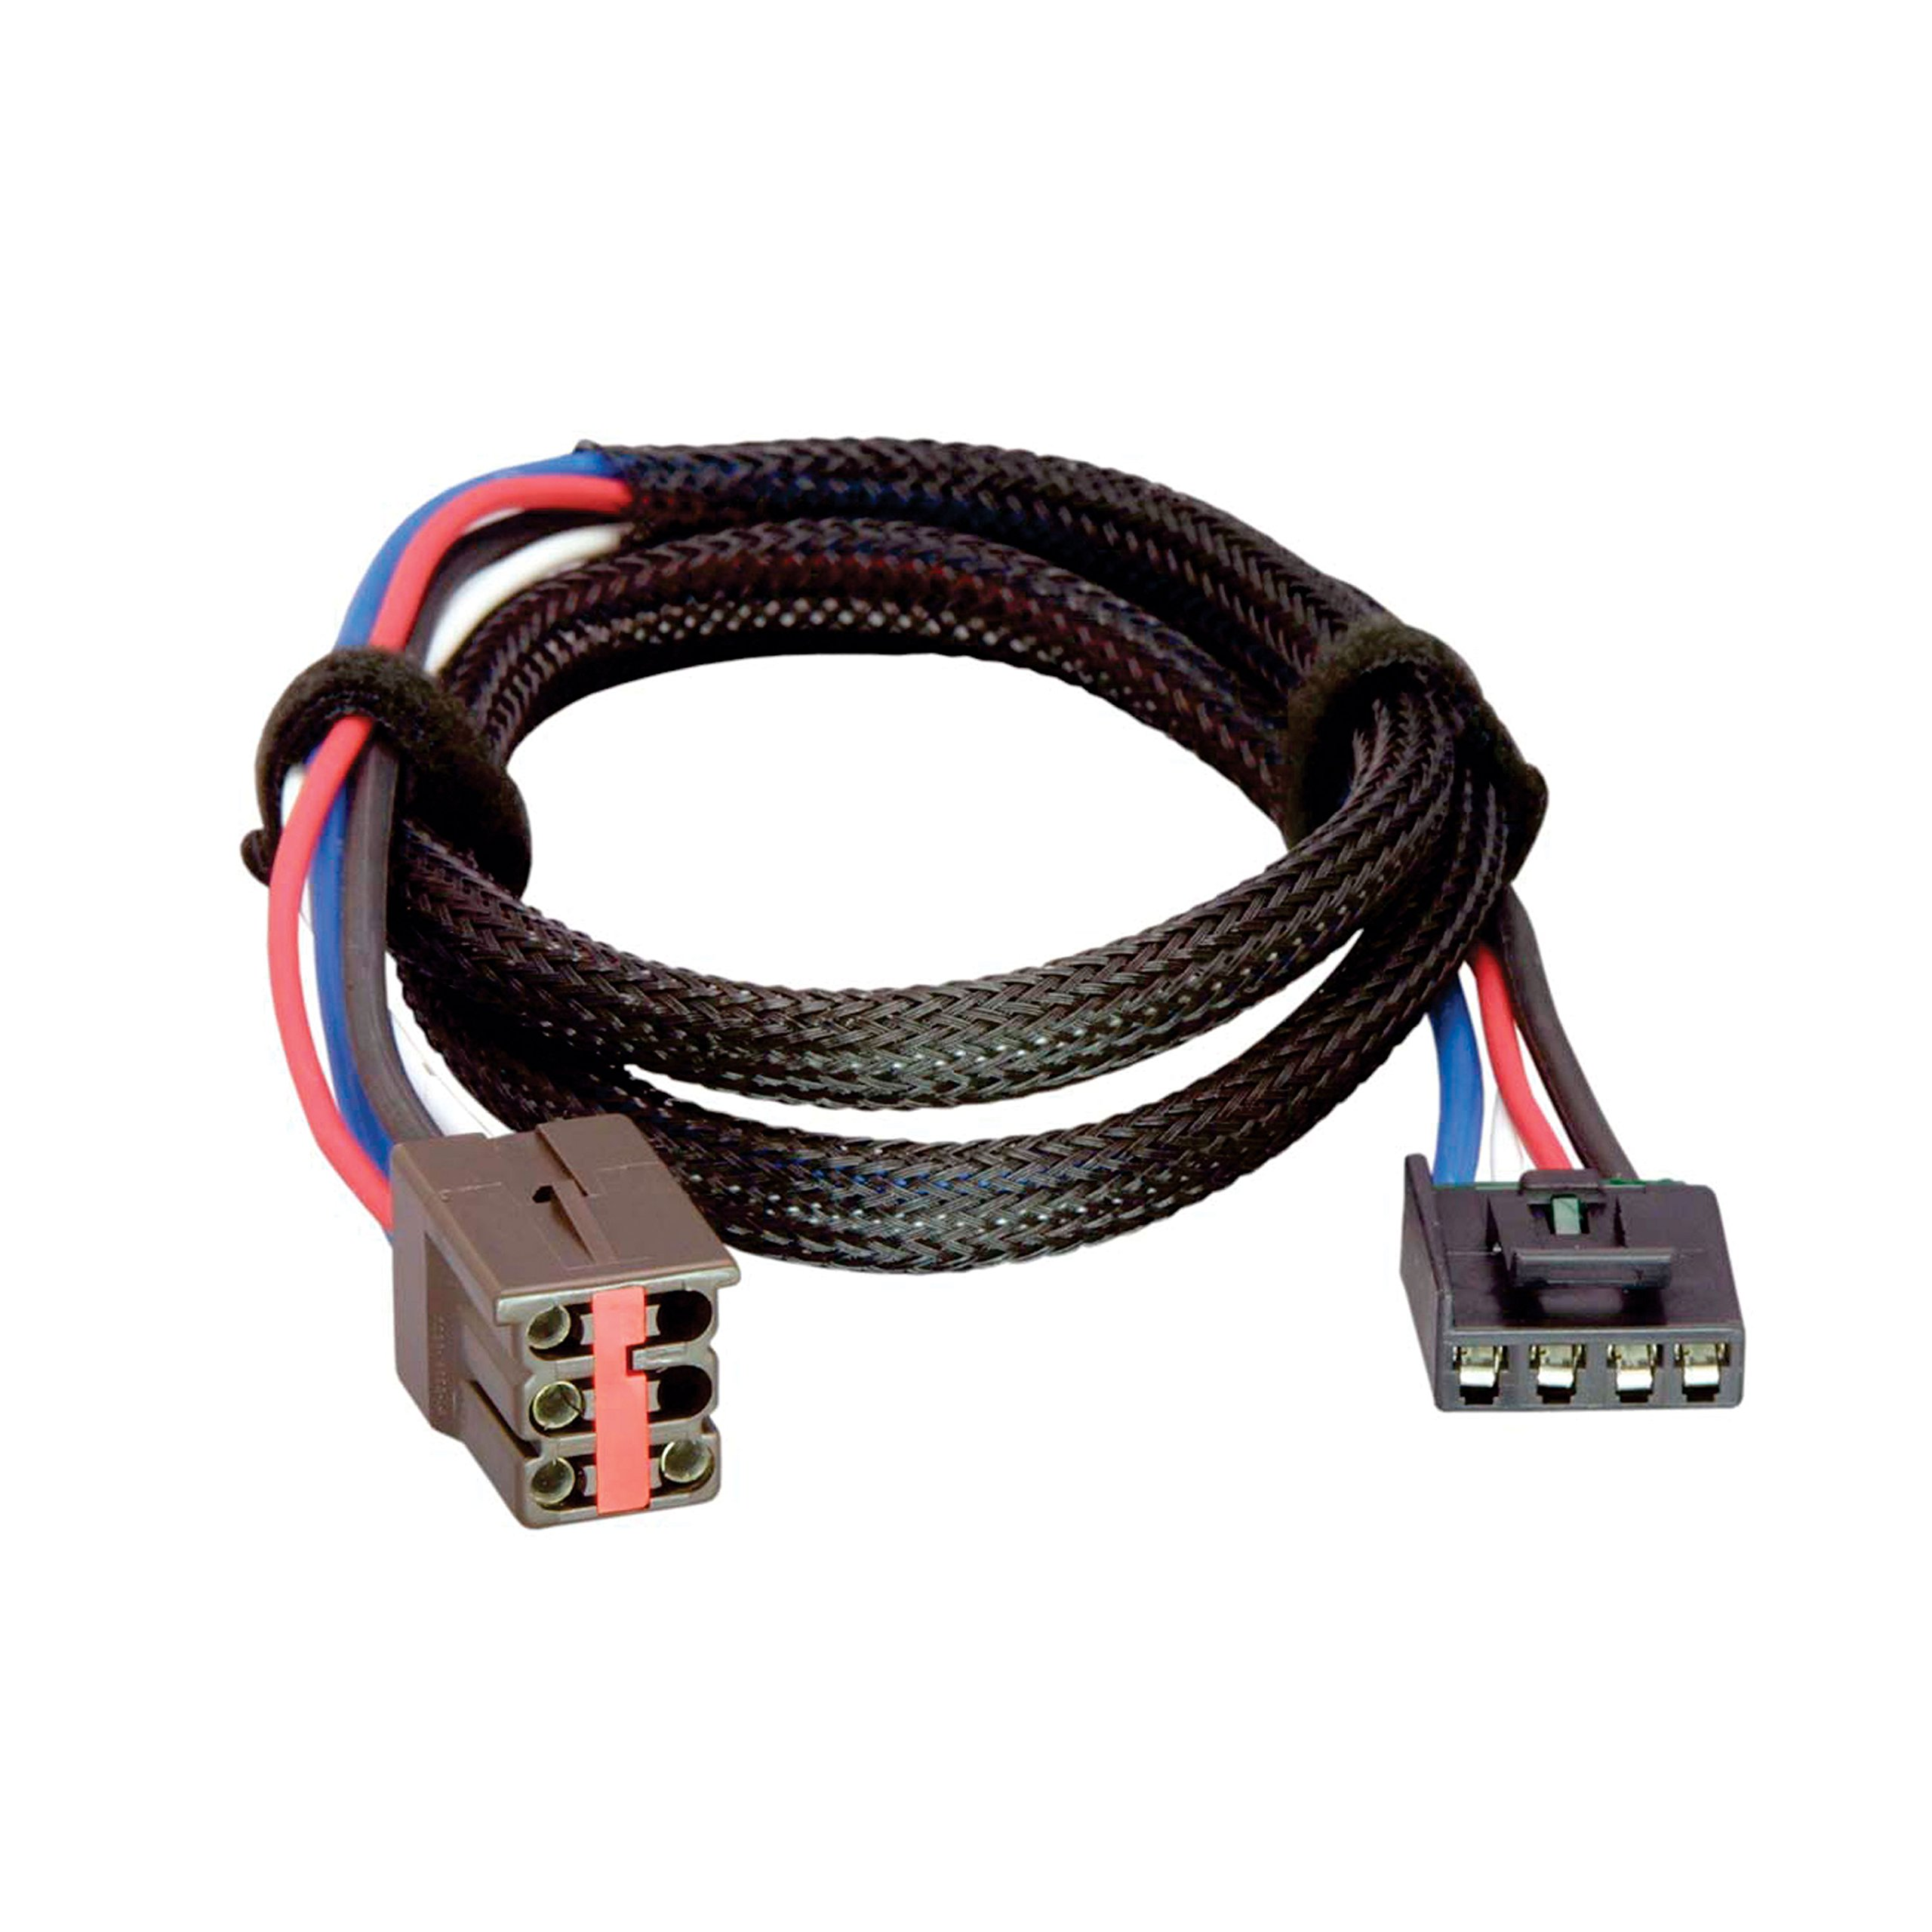 Prodigy P2 Wiring Harness Diagram To Chevy   Wiring Diagram Basic on chevy relay switch, chevy 1500 wireing harness color codes, chevy fan motor, chevy radiator cap, chevy wheel cylinders, chevy clutch assembly, chevy power socket, chevy wiring connectors, chevy speaker wiring, chevy clutch line, chevy wiring horn, chevy front fender, chevy abs unit, chevy warning sticker, chevy crossmember, chevy alternator harness, chevy speaker harness, chevy rear diff, chevy battery terminal, chevy wiring schematics,